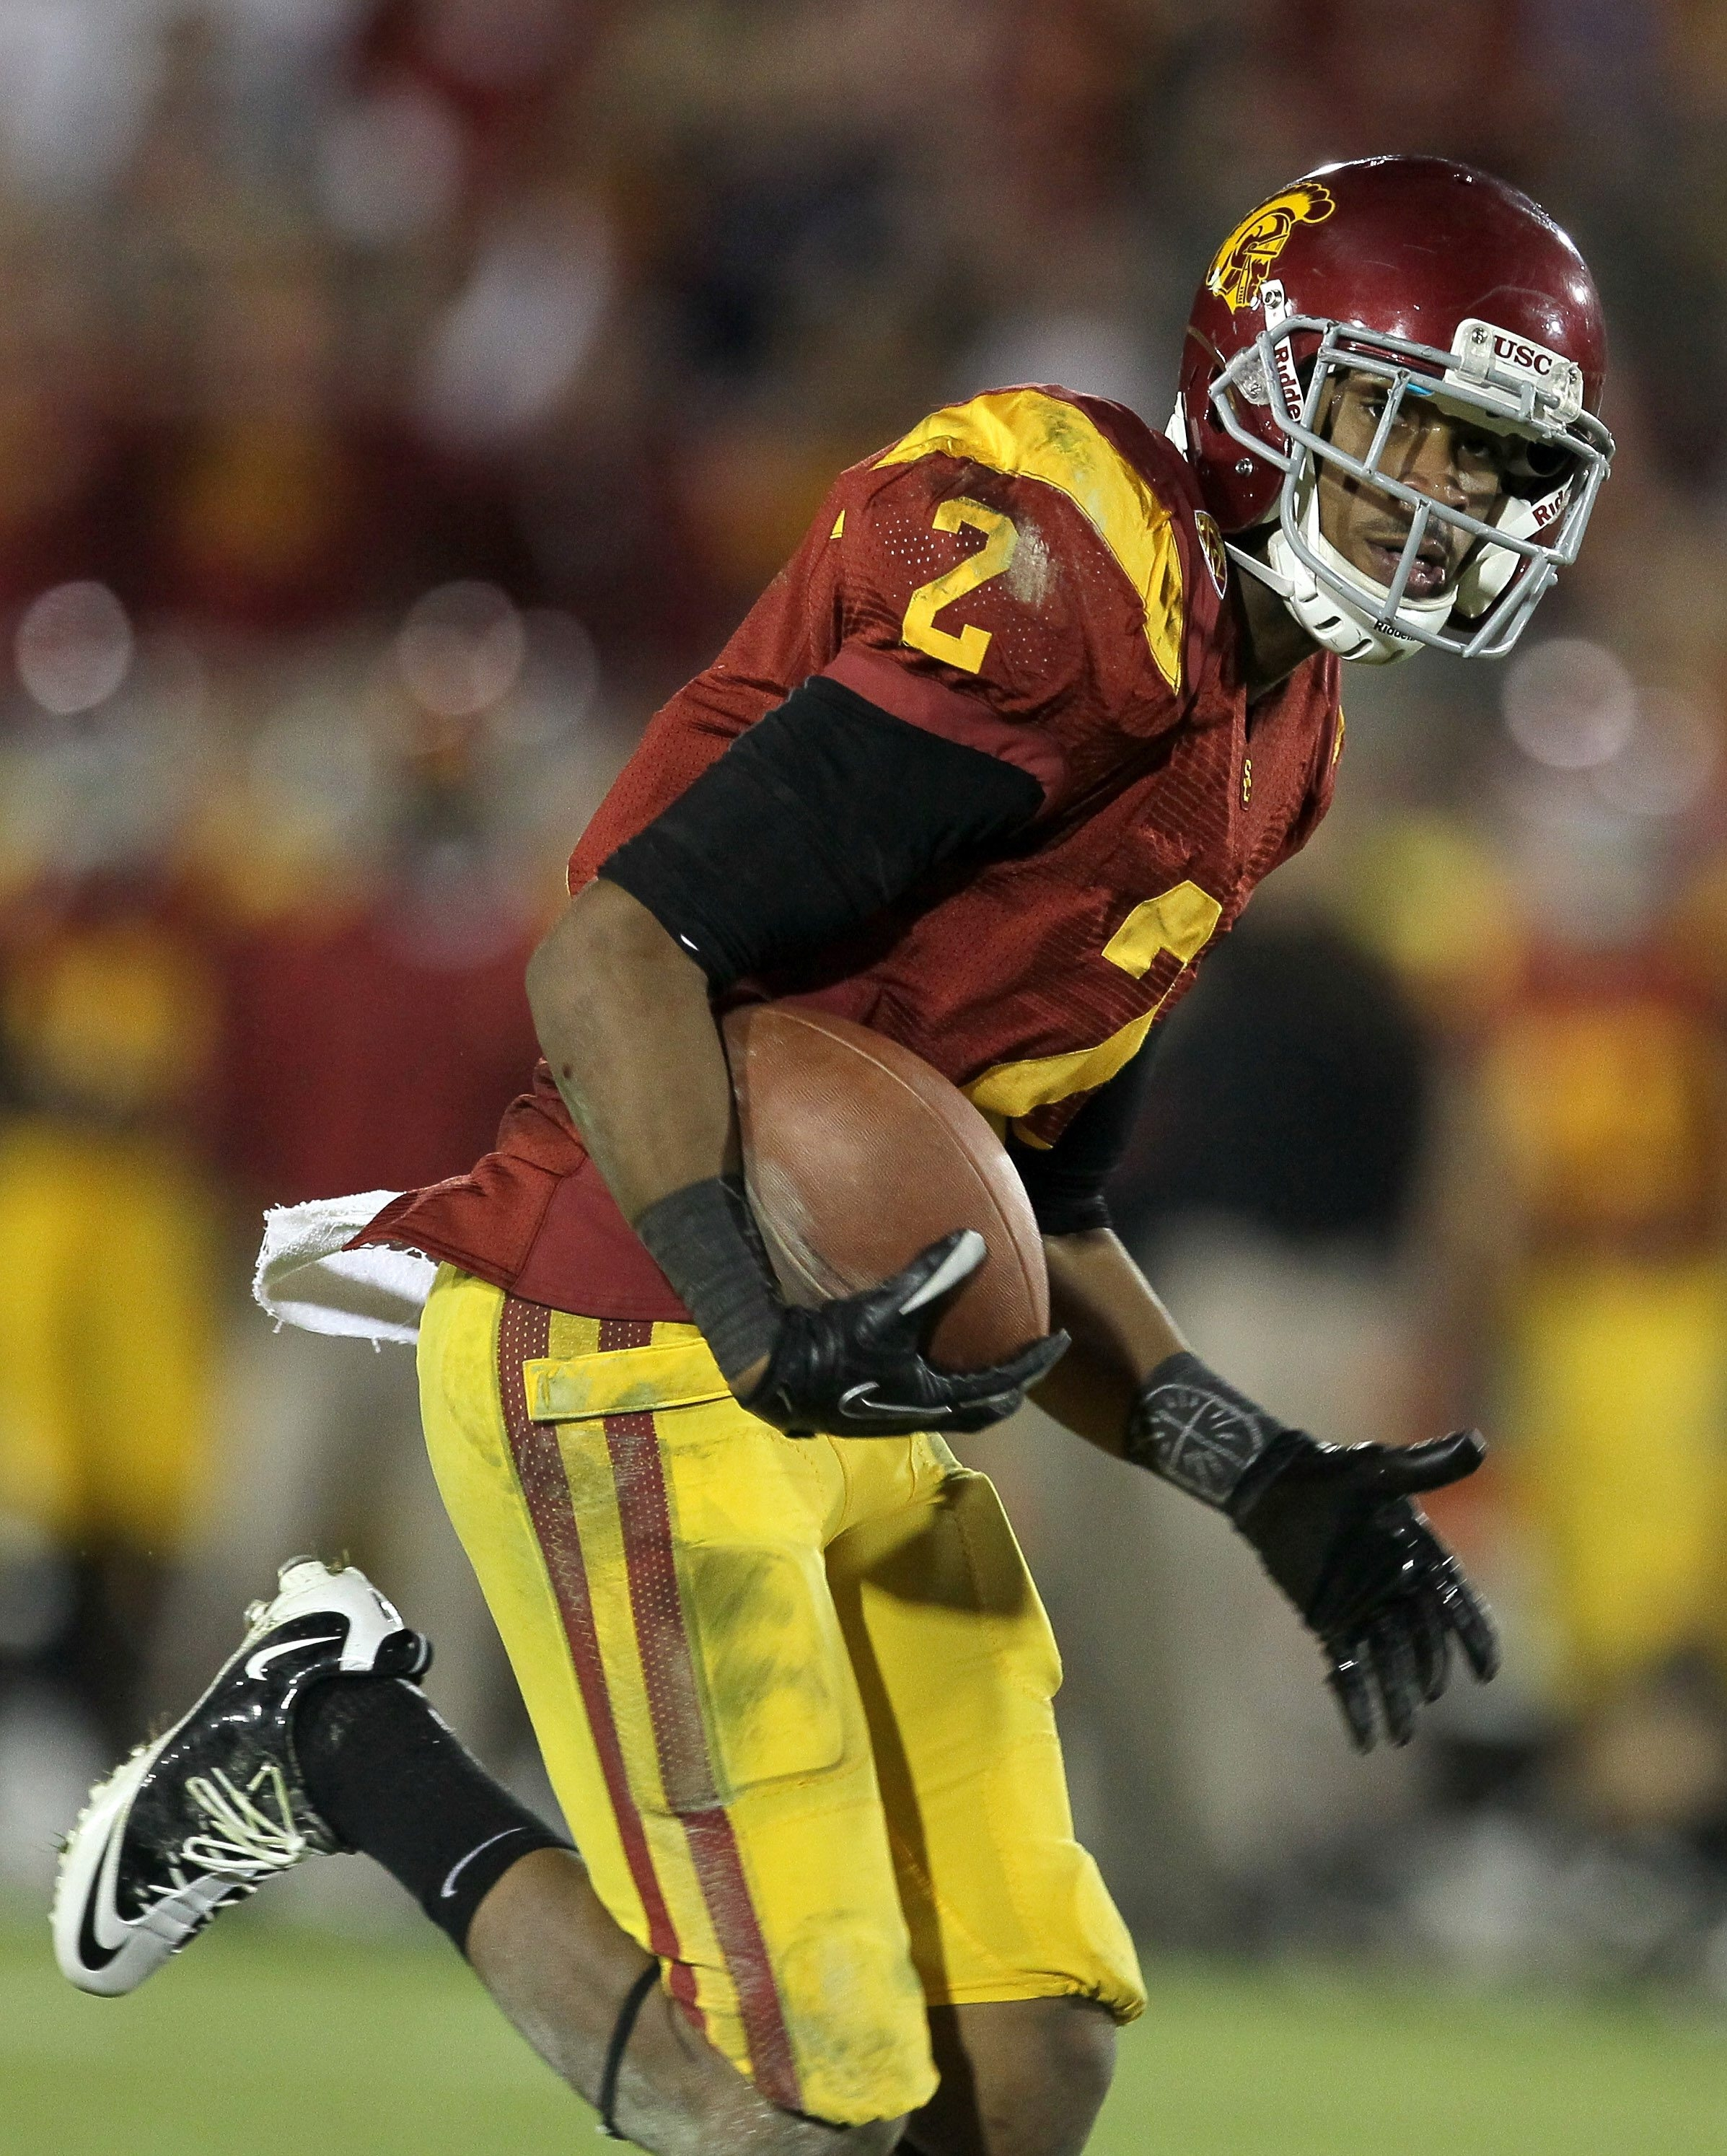 Wide receiver Robert Woods of the USC Trojans was the Bills 41st overall pick in the NFL Draft. (Photo by Stephen Dunn/Getty Images)